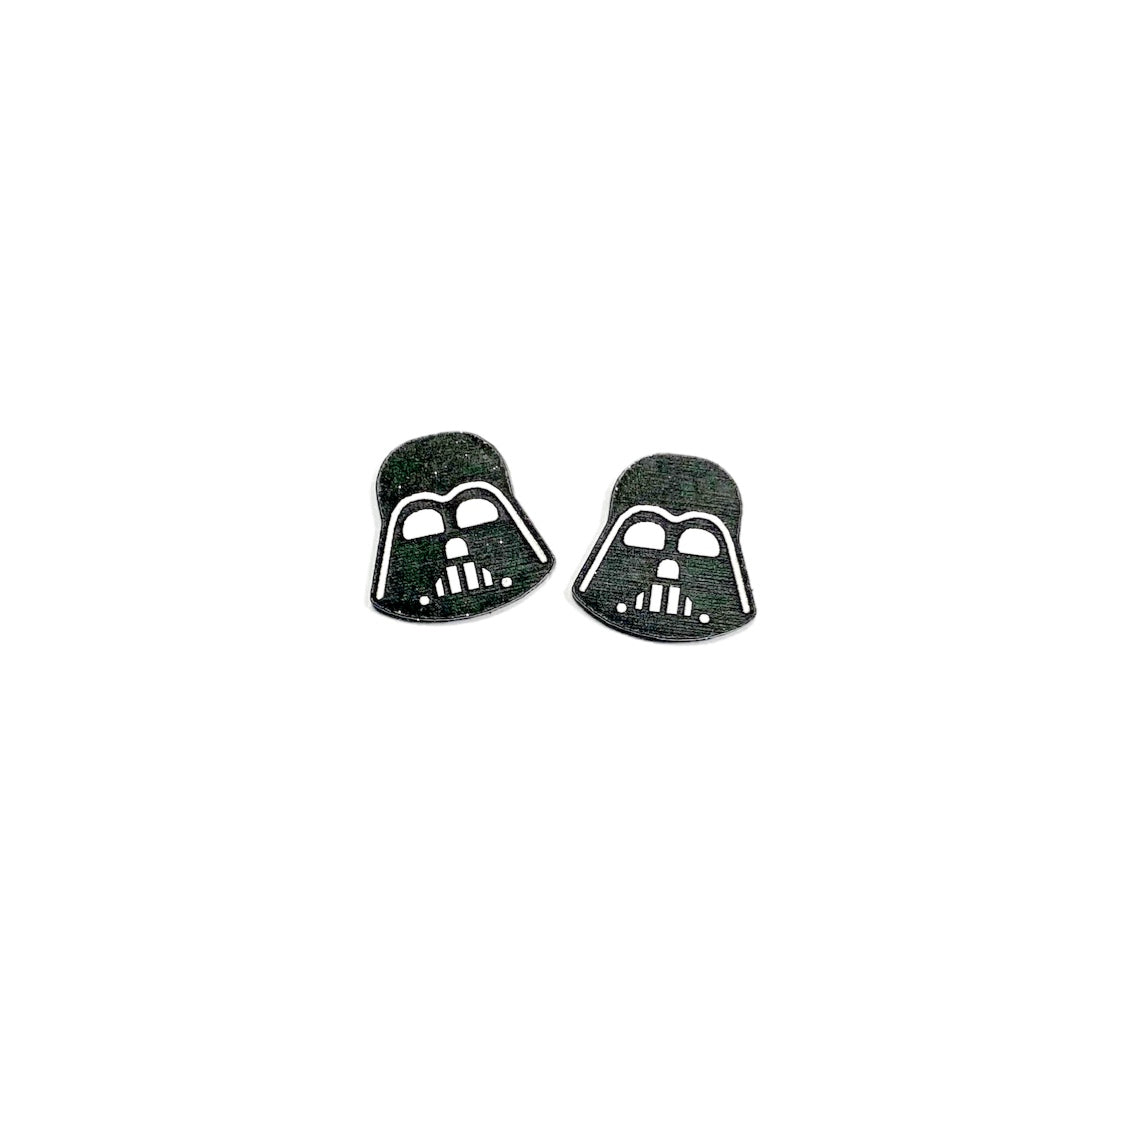 Vader - 15mm Shaped Studs